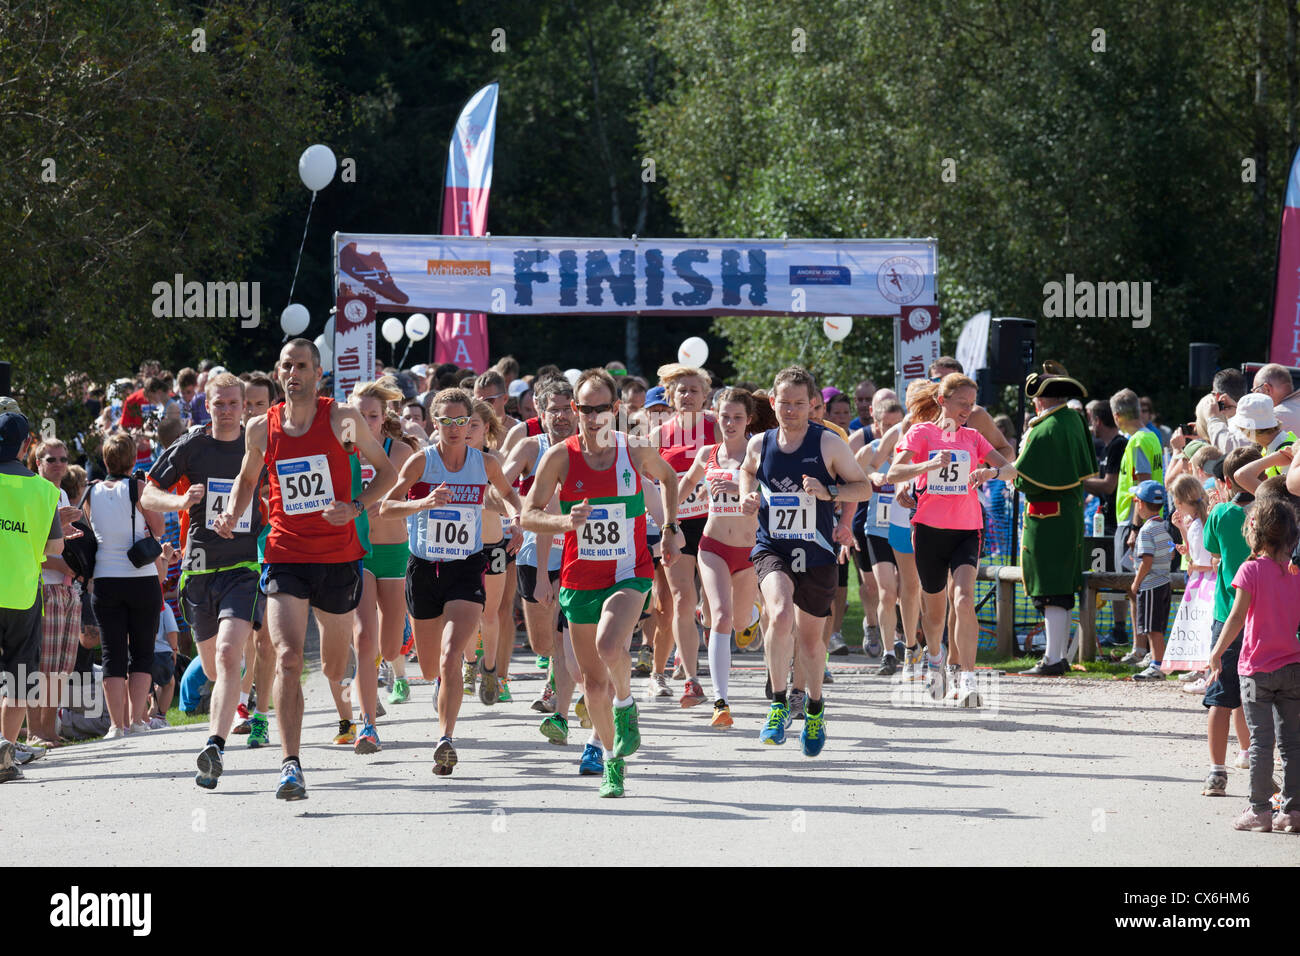 Runners starting the  10k and 5k run at Alice Holt Forest with Finish sign - Stock Image